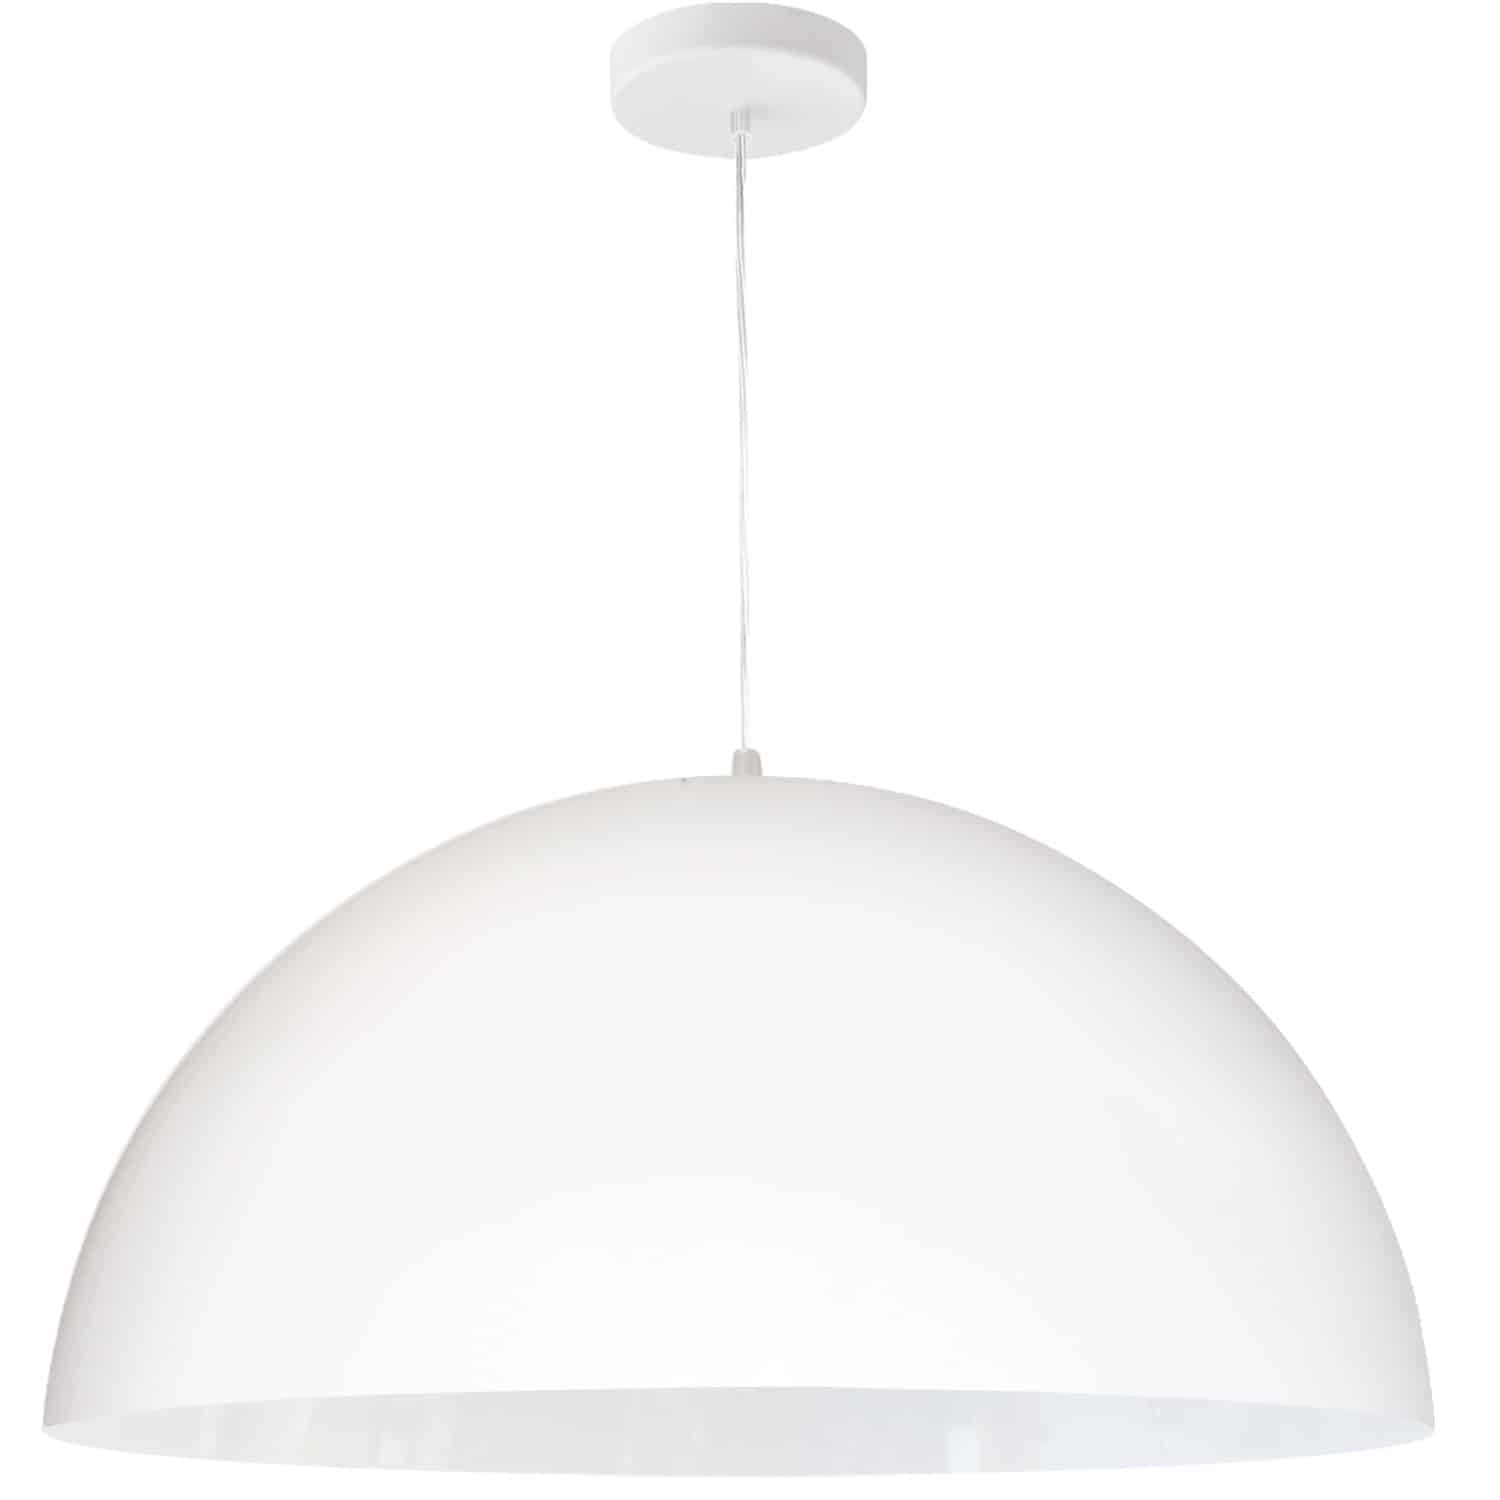 1 Light Incandescent Large Dome Pendant, Matte White